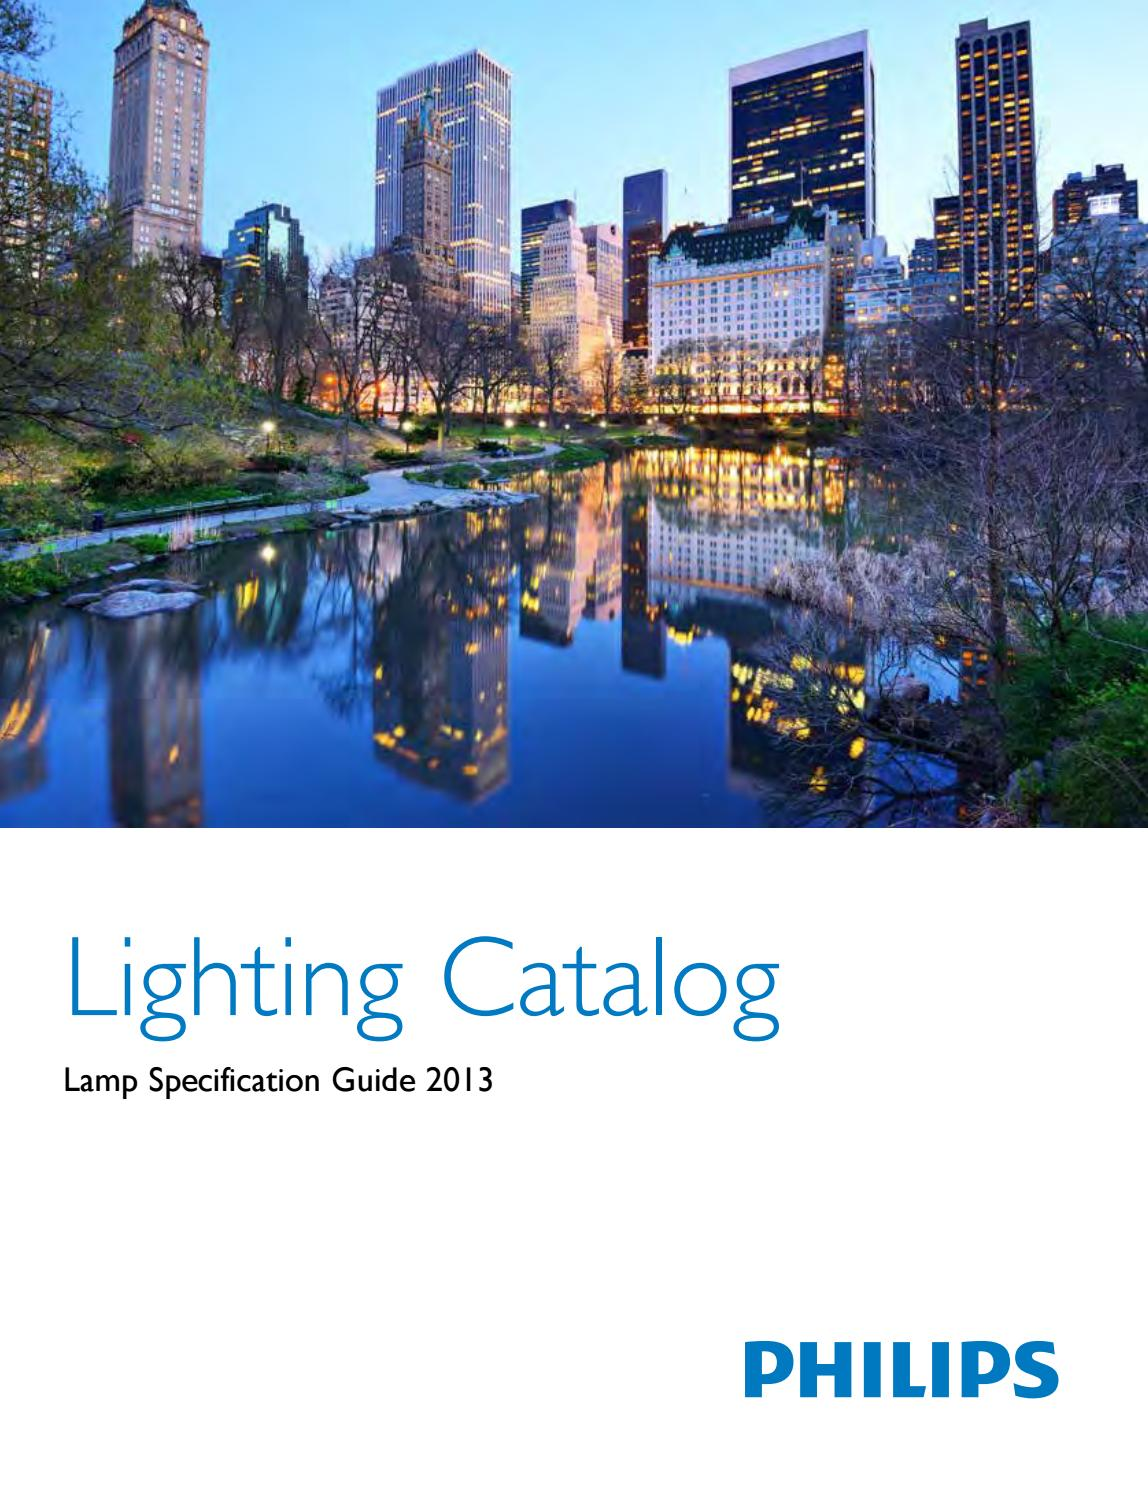 Phillips lamp specification catalog by LED WORLD - issuu